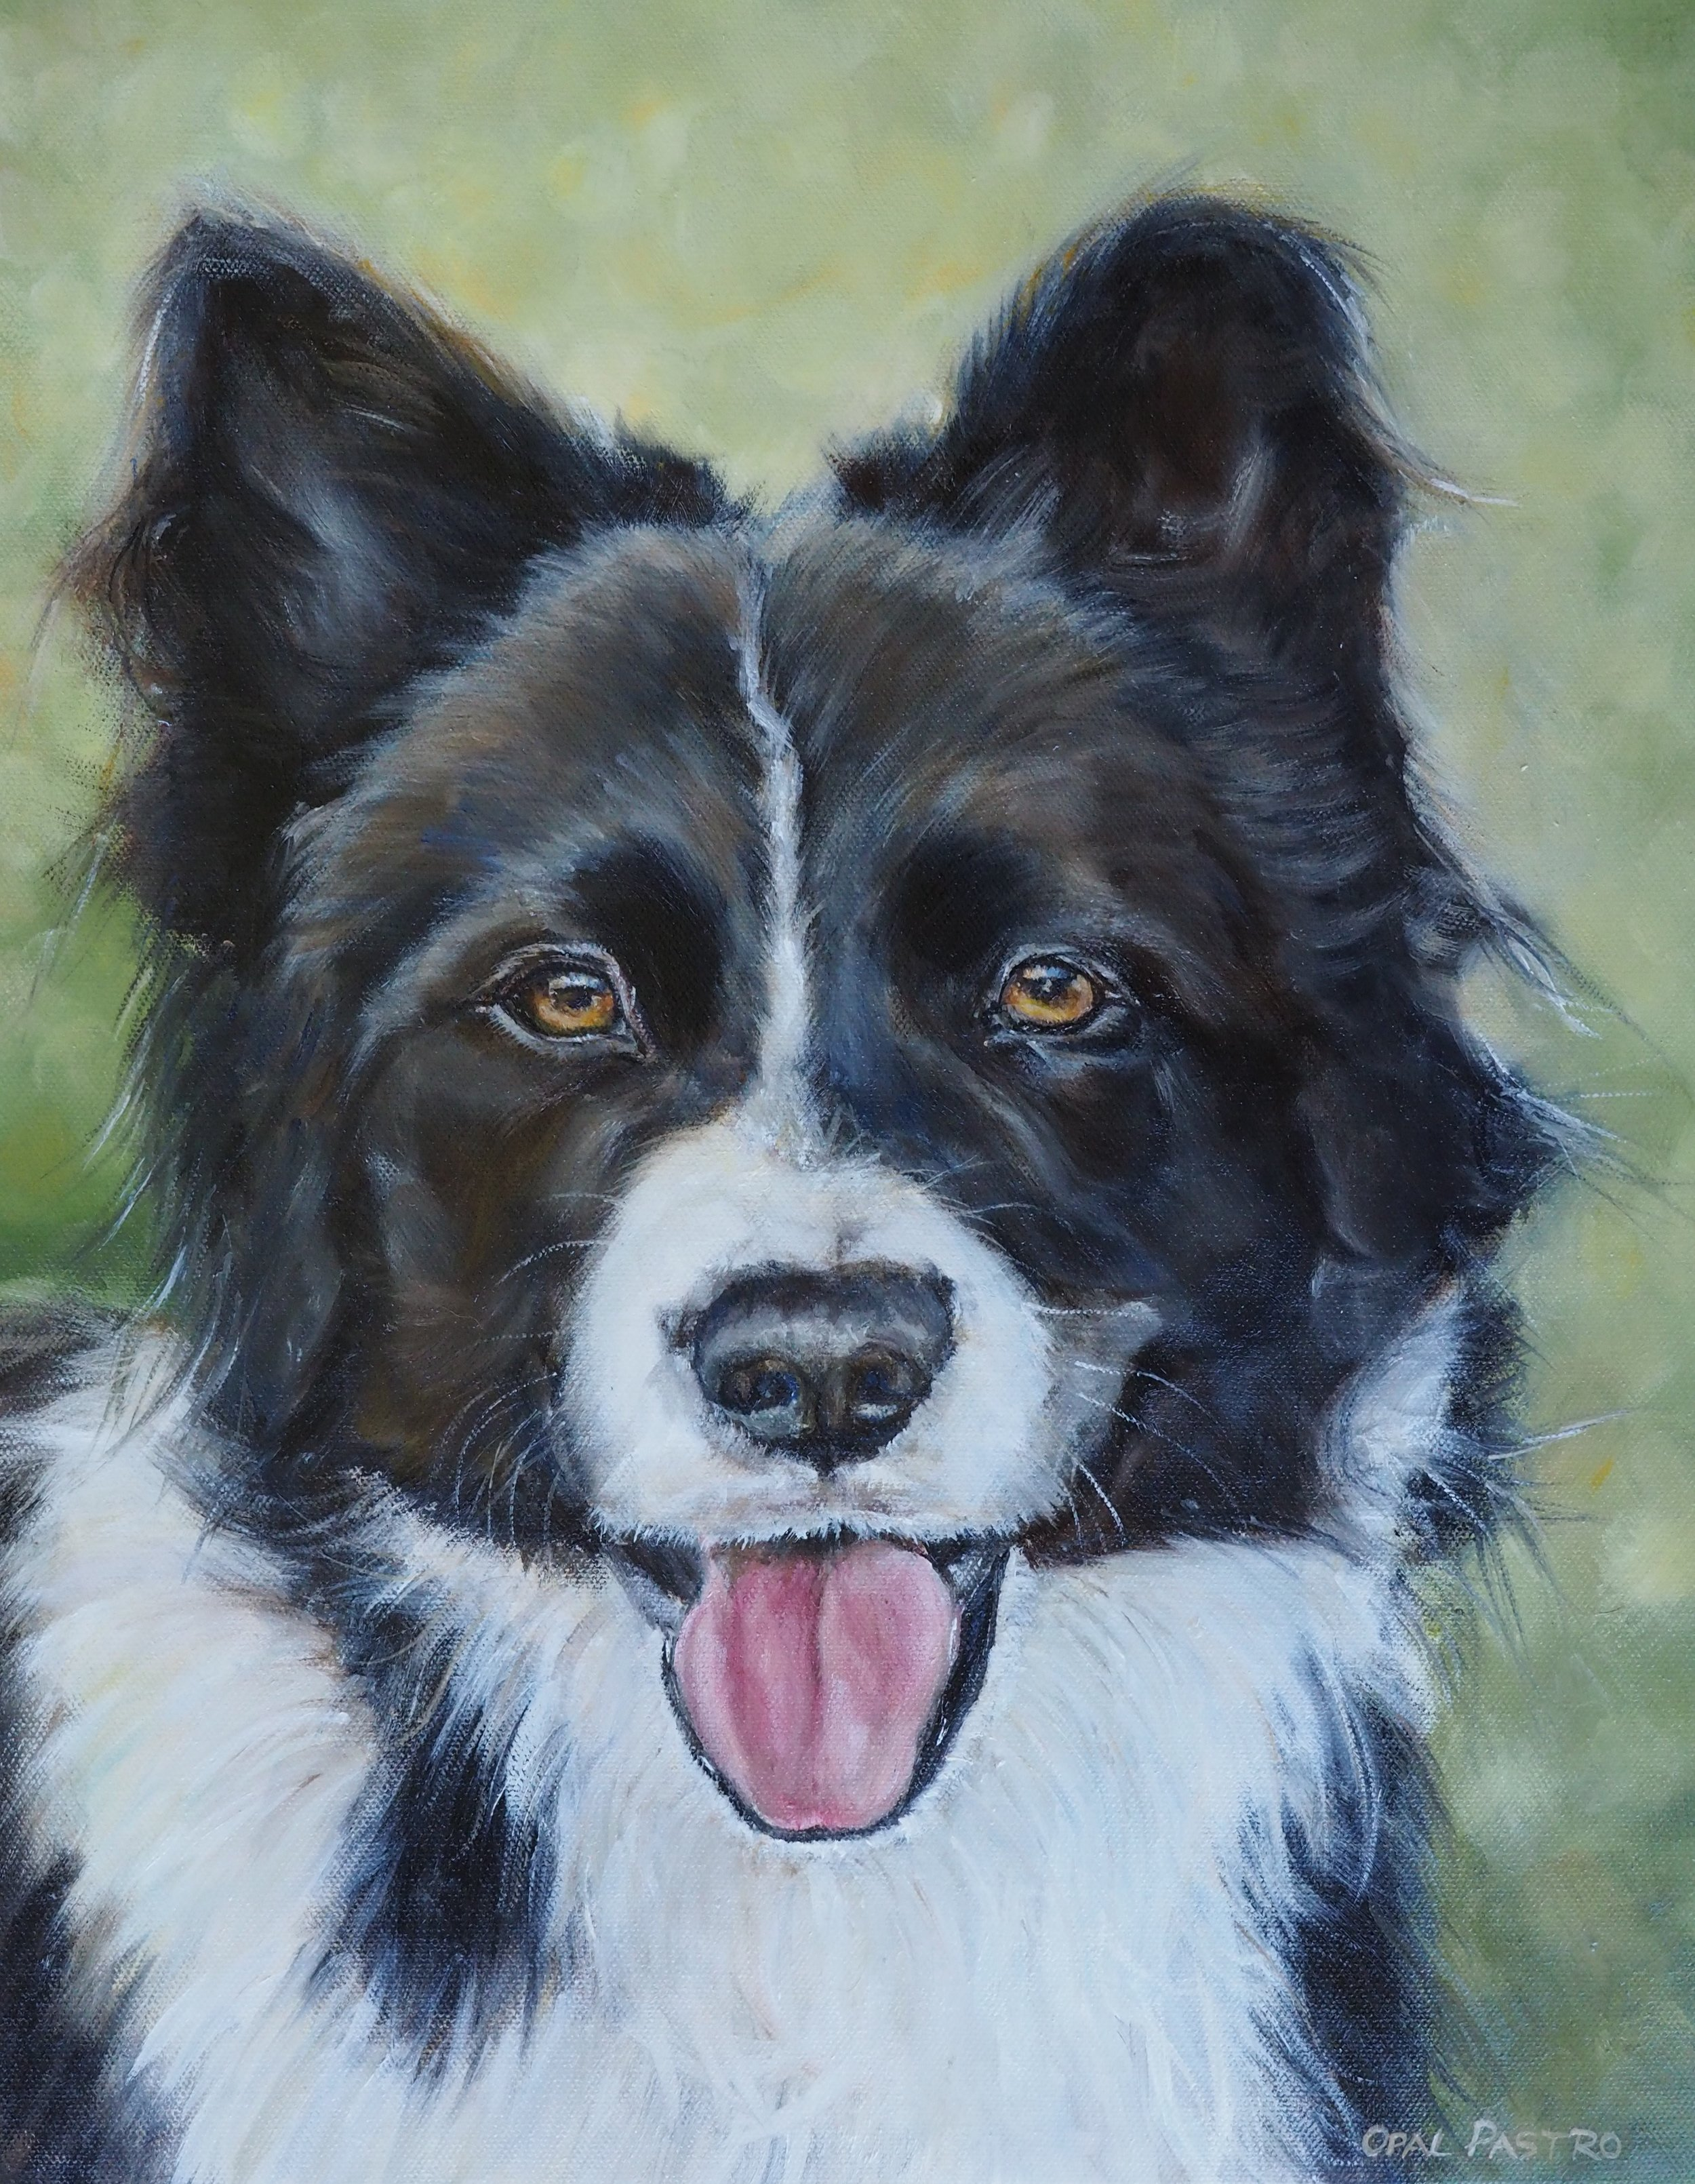 DOG CUSTOM PAINTING OF BOARDER COLLIE HAND PAINTED FROM PHOTOS BY AUSTRALIAN ARTIST, OPAL PASTRO ART